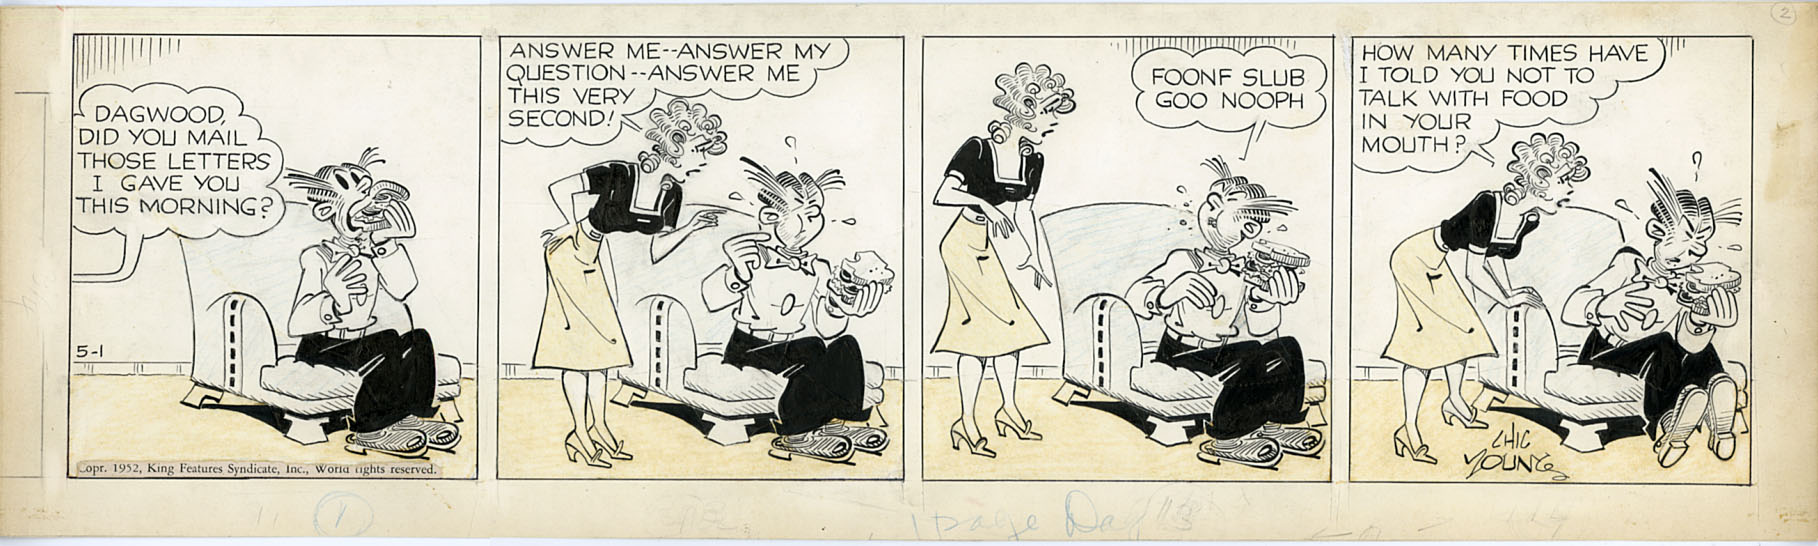 JIM RAYMOND - BLONDIE DAILY STRIP ORIGINAL ART 5-1-52 / DAGWOOD SANDWICH